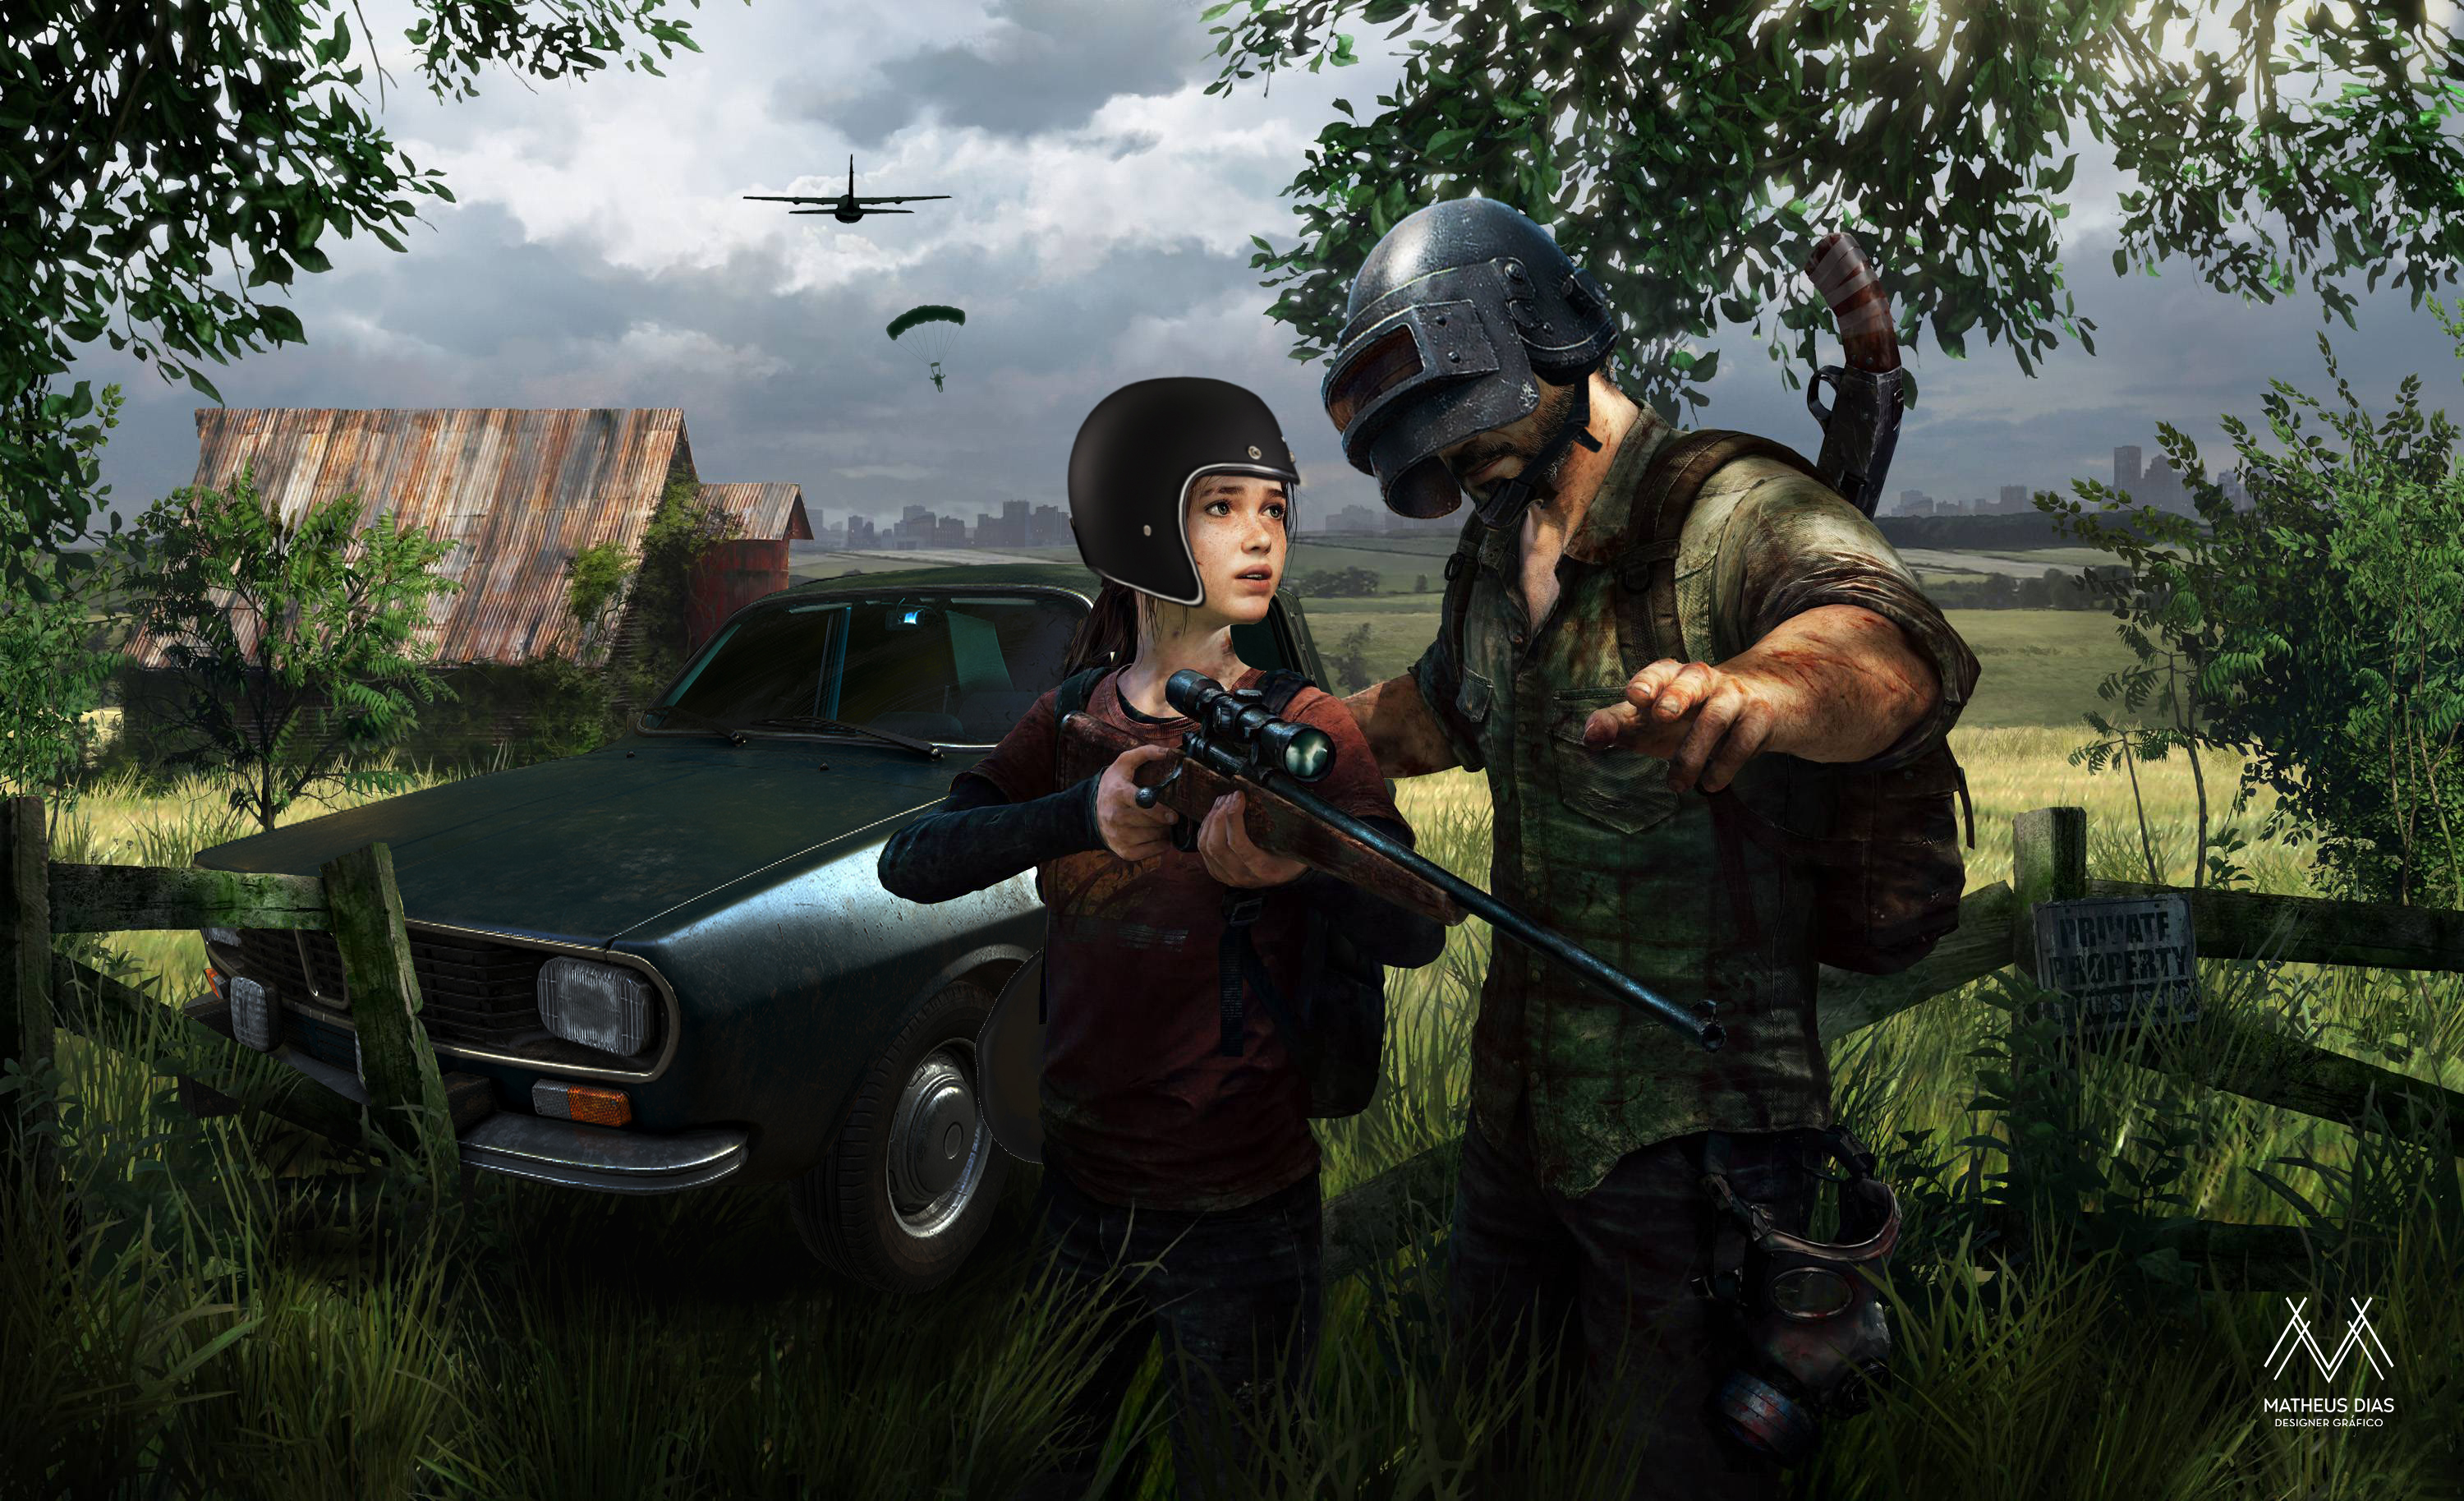 1920x1080 Pubg Characters 4k Laptop Full Hd 1080p Hd 4k: 1920x1080 The Last Of Us As Pubg Character Laptop Full HD